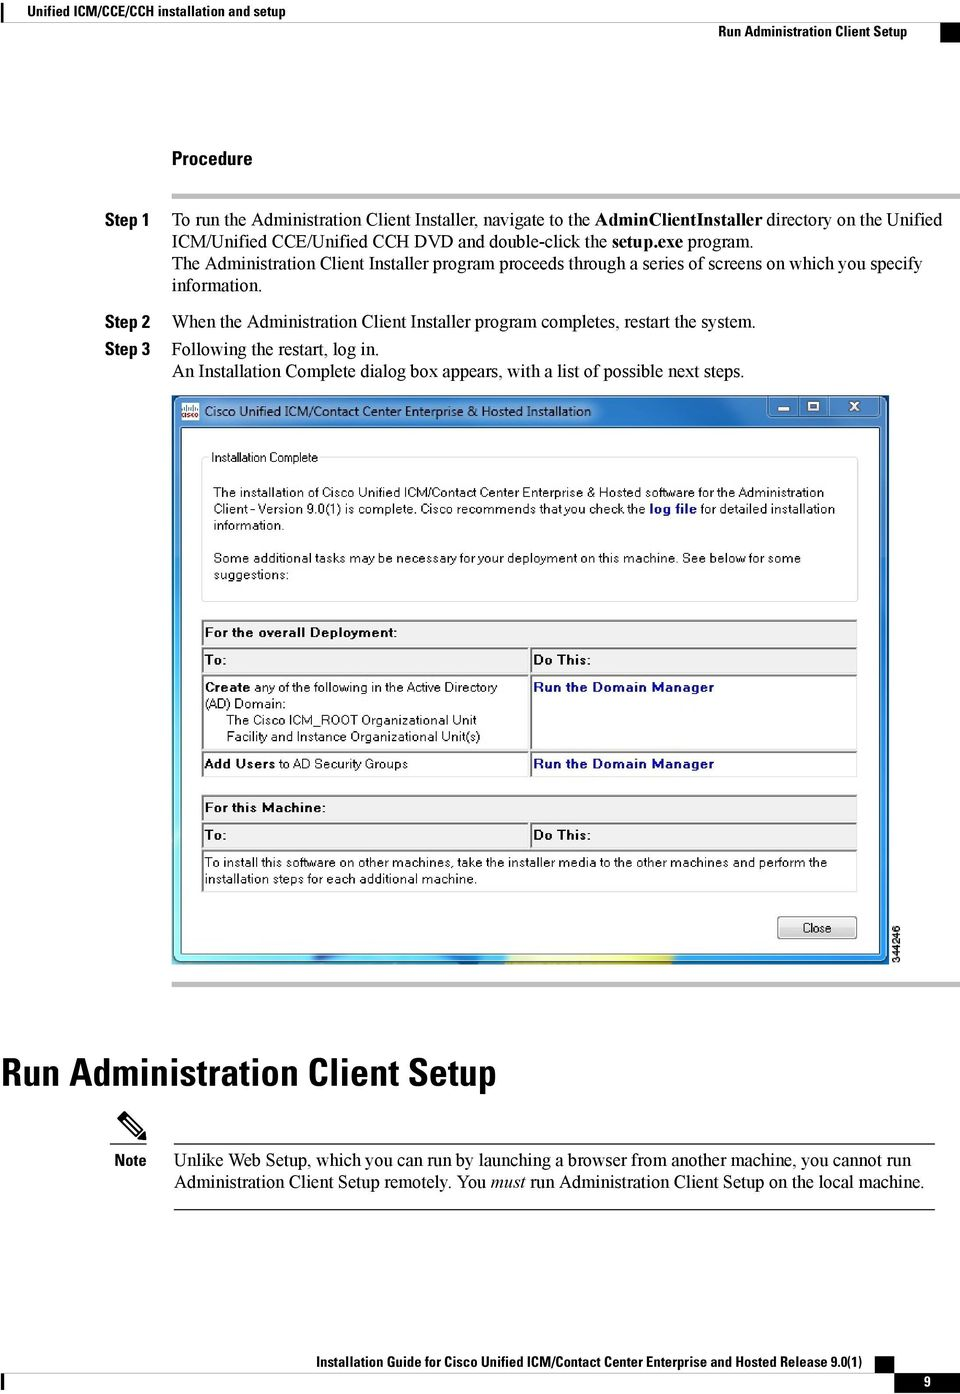 When the Administration Client Installer program completes, restart the system. Following the restart, log in. An Installation Complete dialog box appears, with a list of possible next steps.